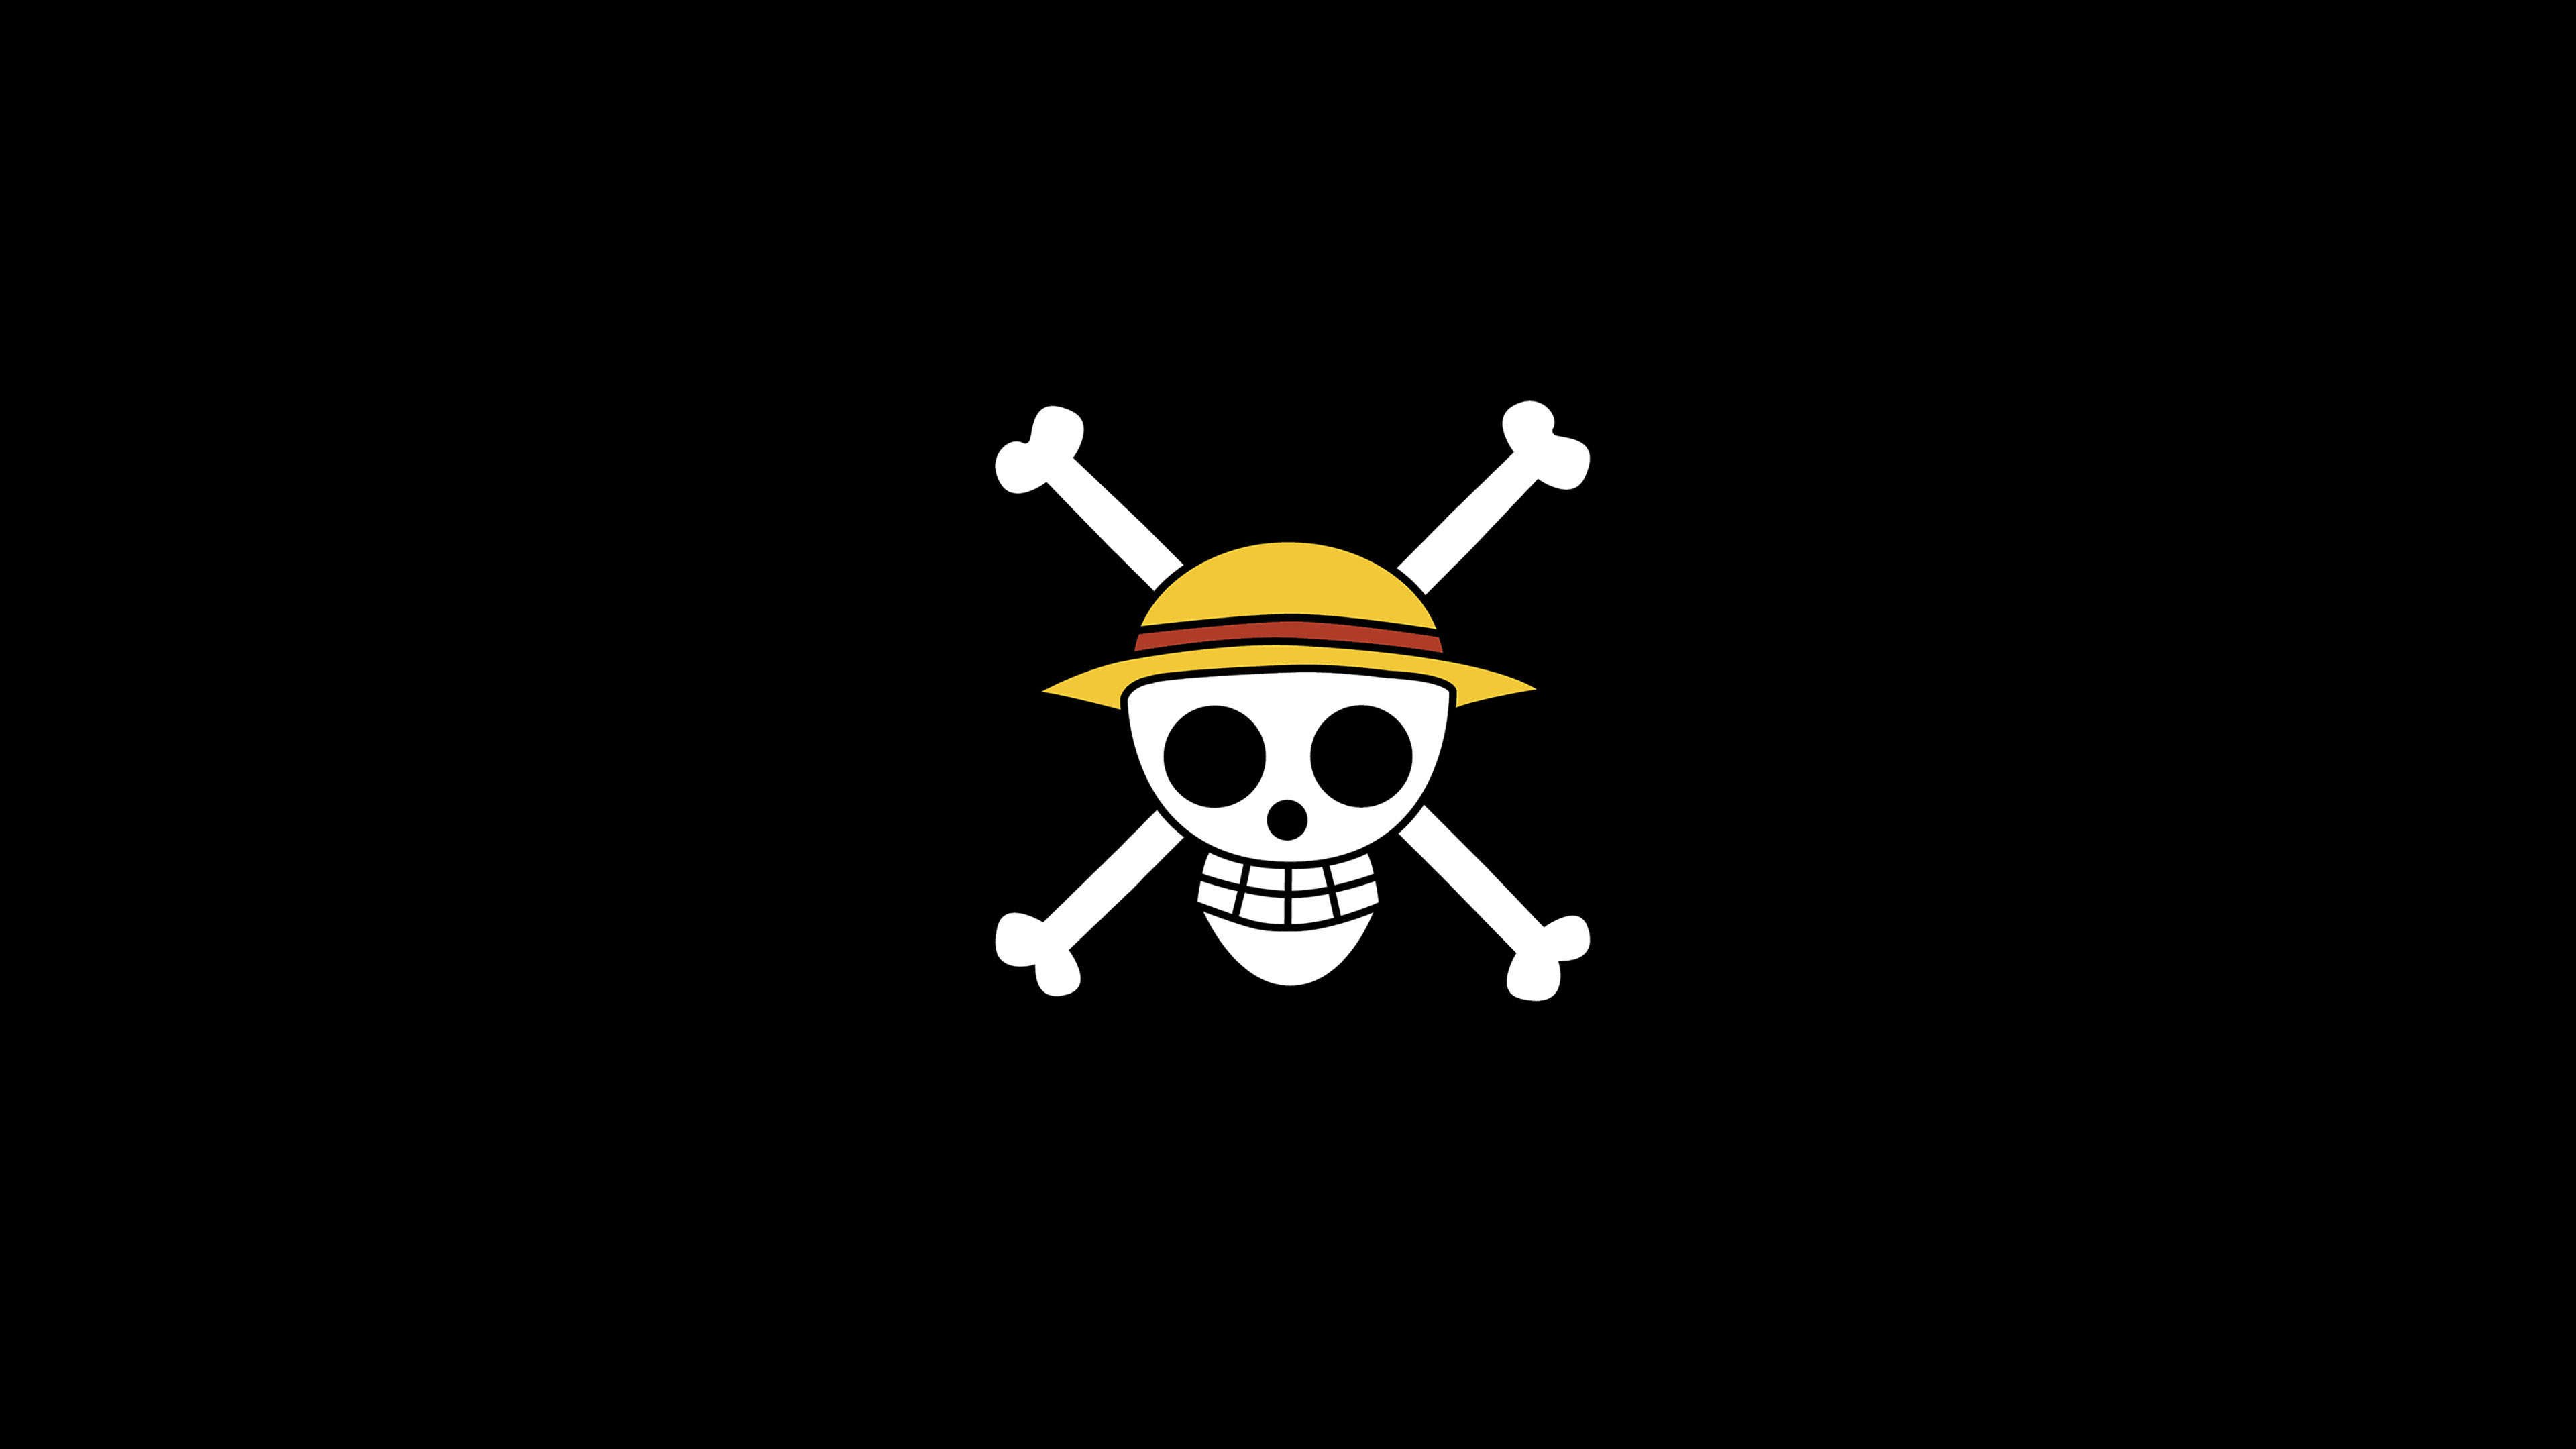 Wallpaper for desktop laptop ad49 one piece logo art - One piece wallpaper hd for android ...